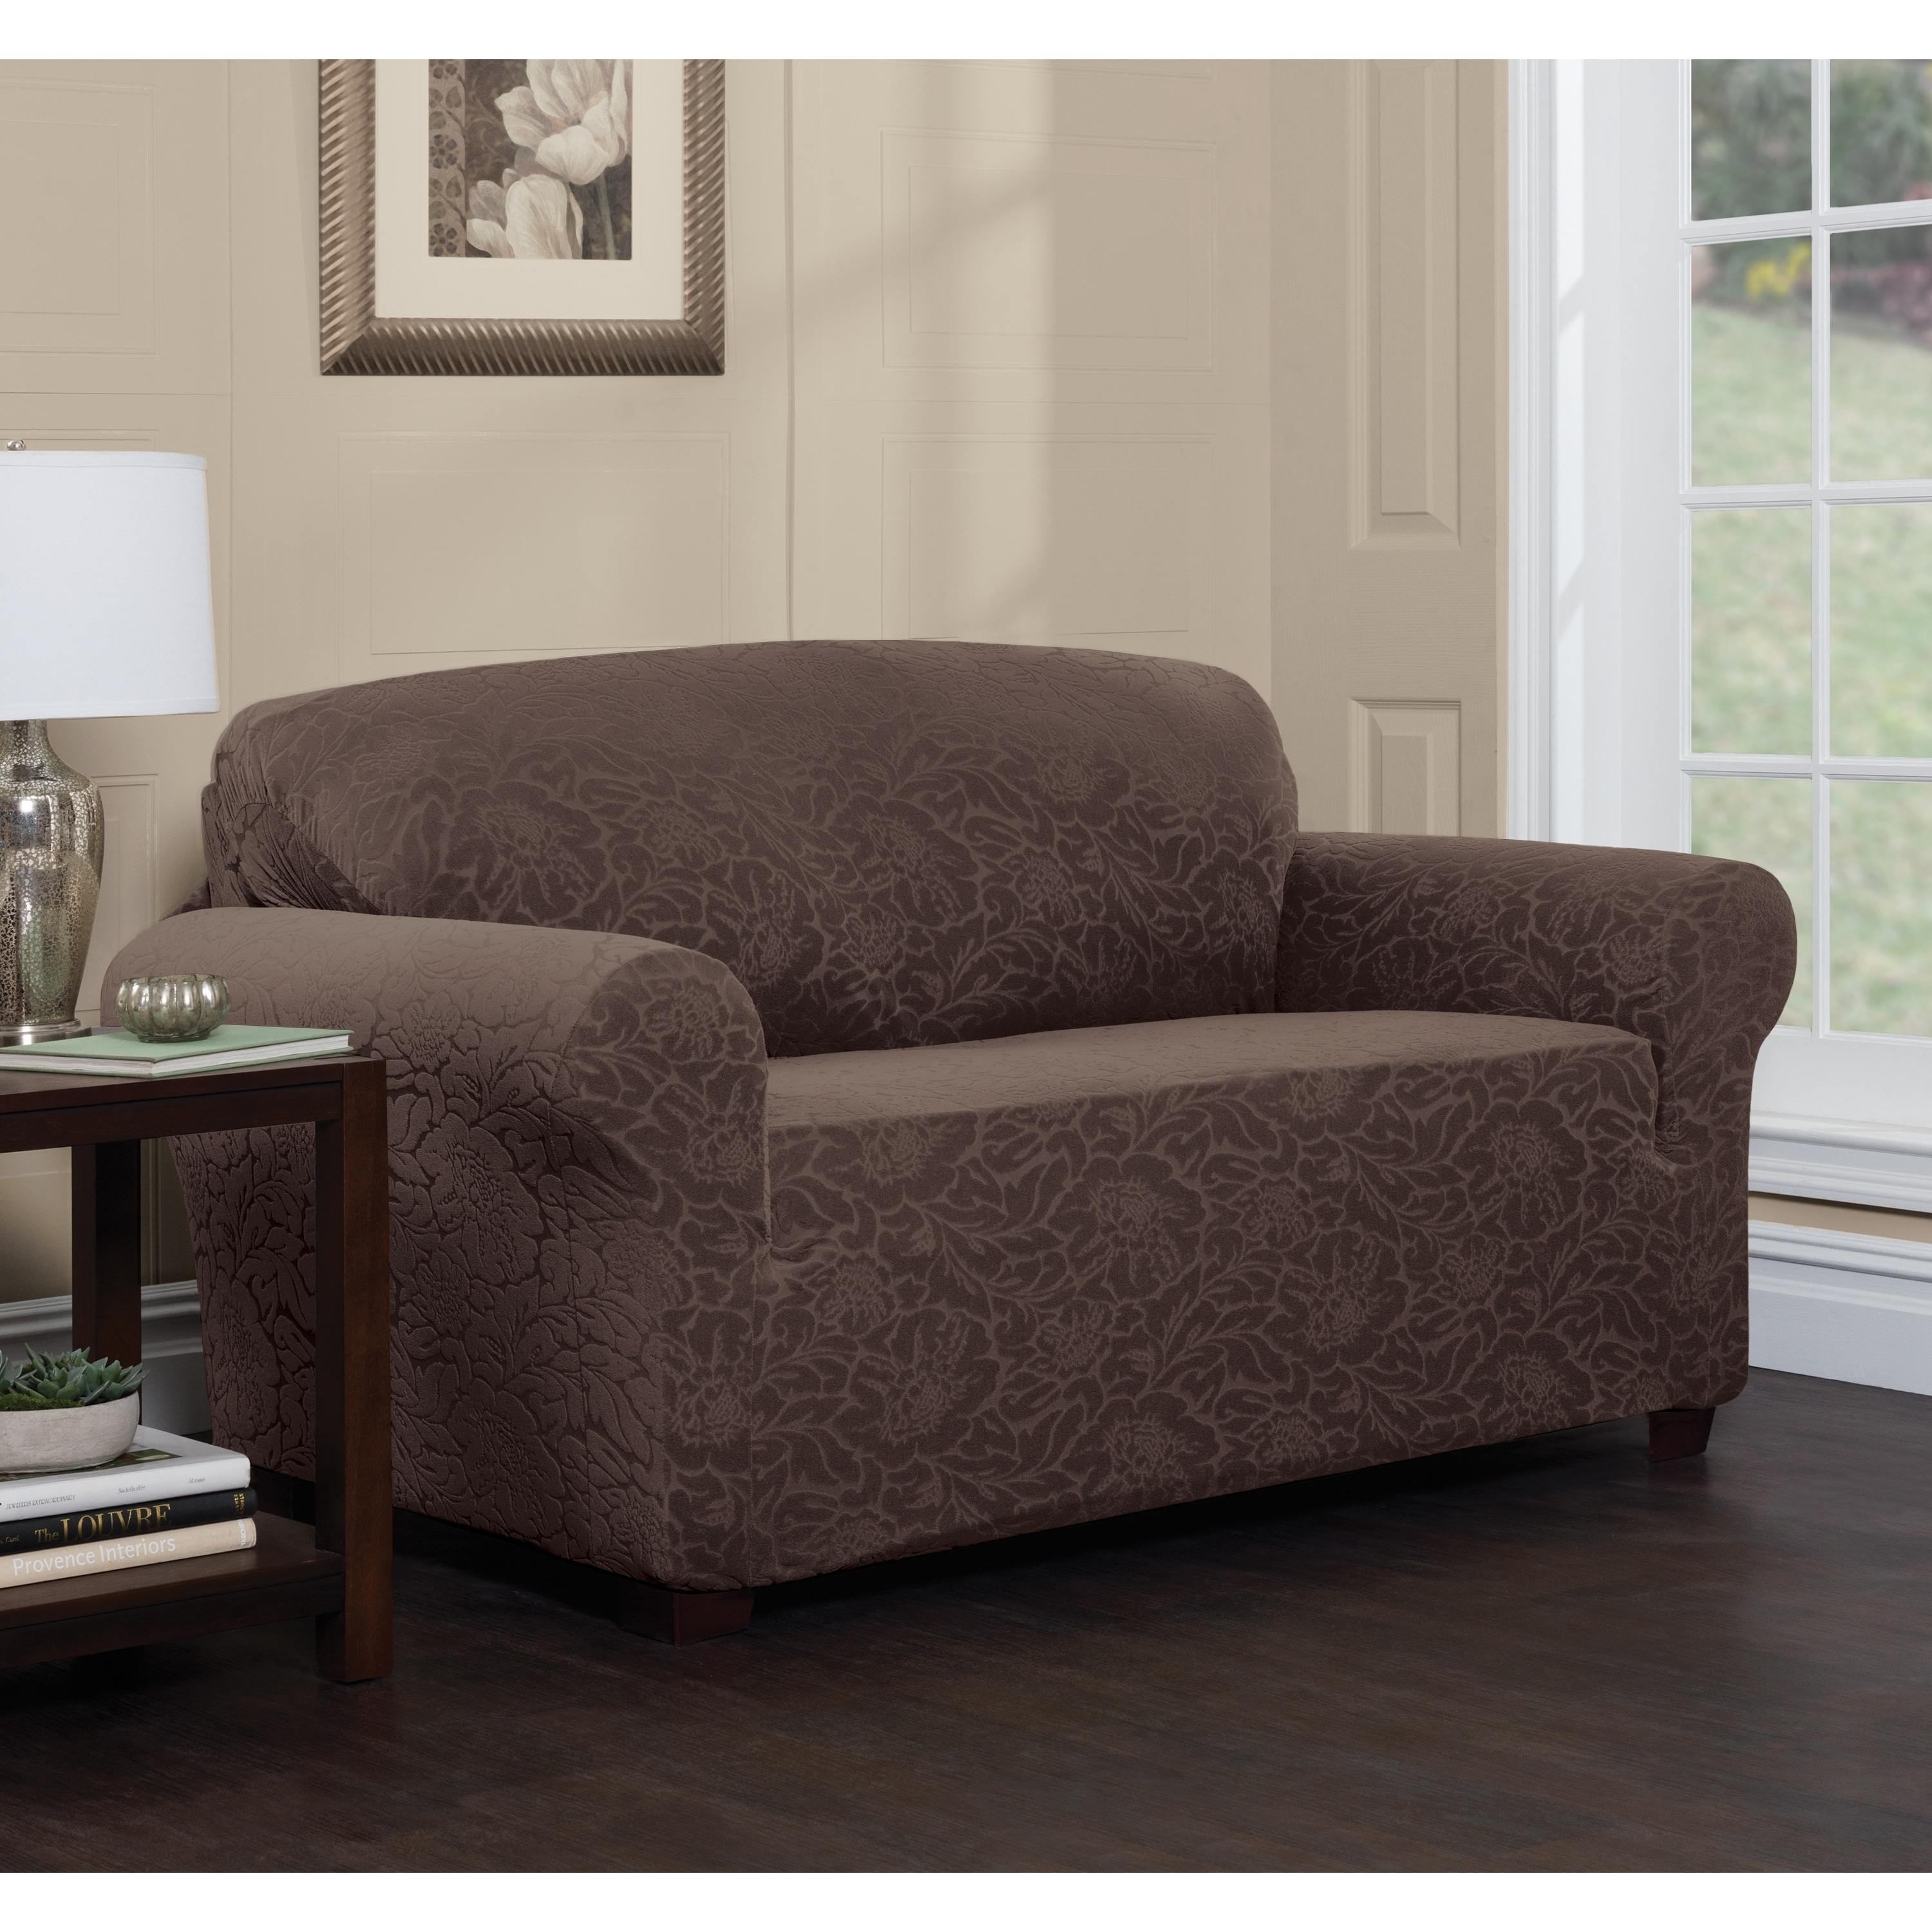 Stretch Sensations Stretch Floral Loveseat Slipcover (Brown   Polyester    Machine Wash   Floral